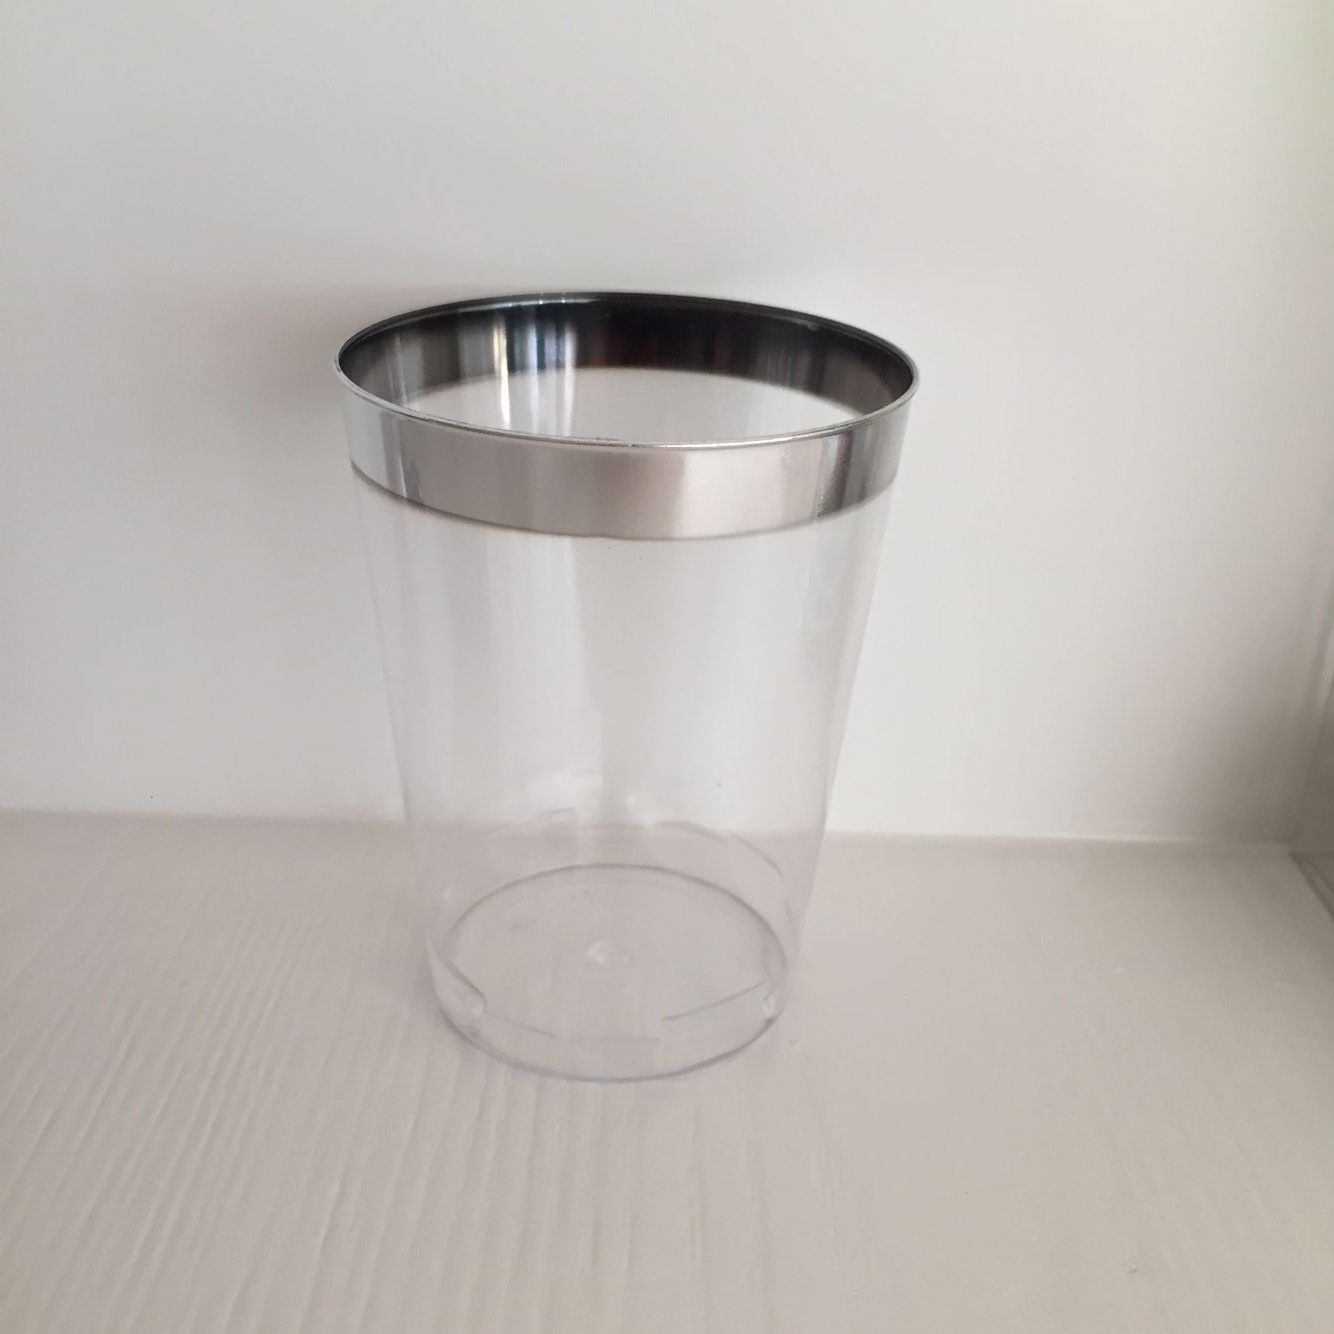 Glass, Tableware, PS, Transparent, Disposable, Colorful, Silver Rim, Plastic Cup